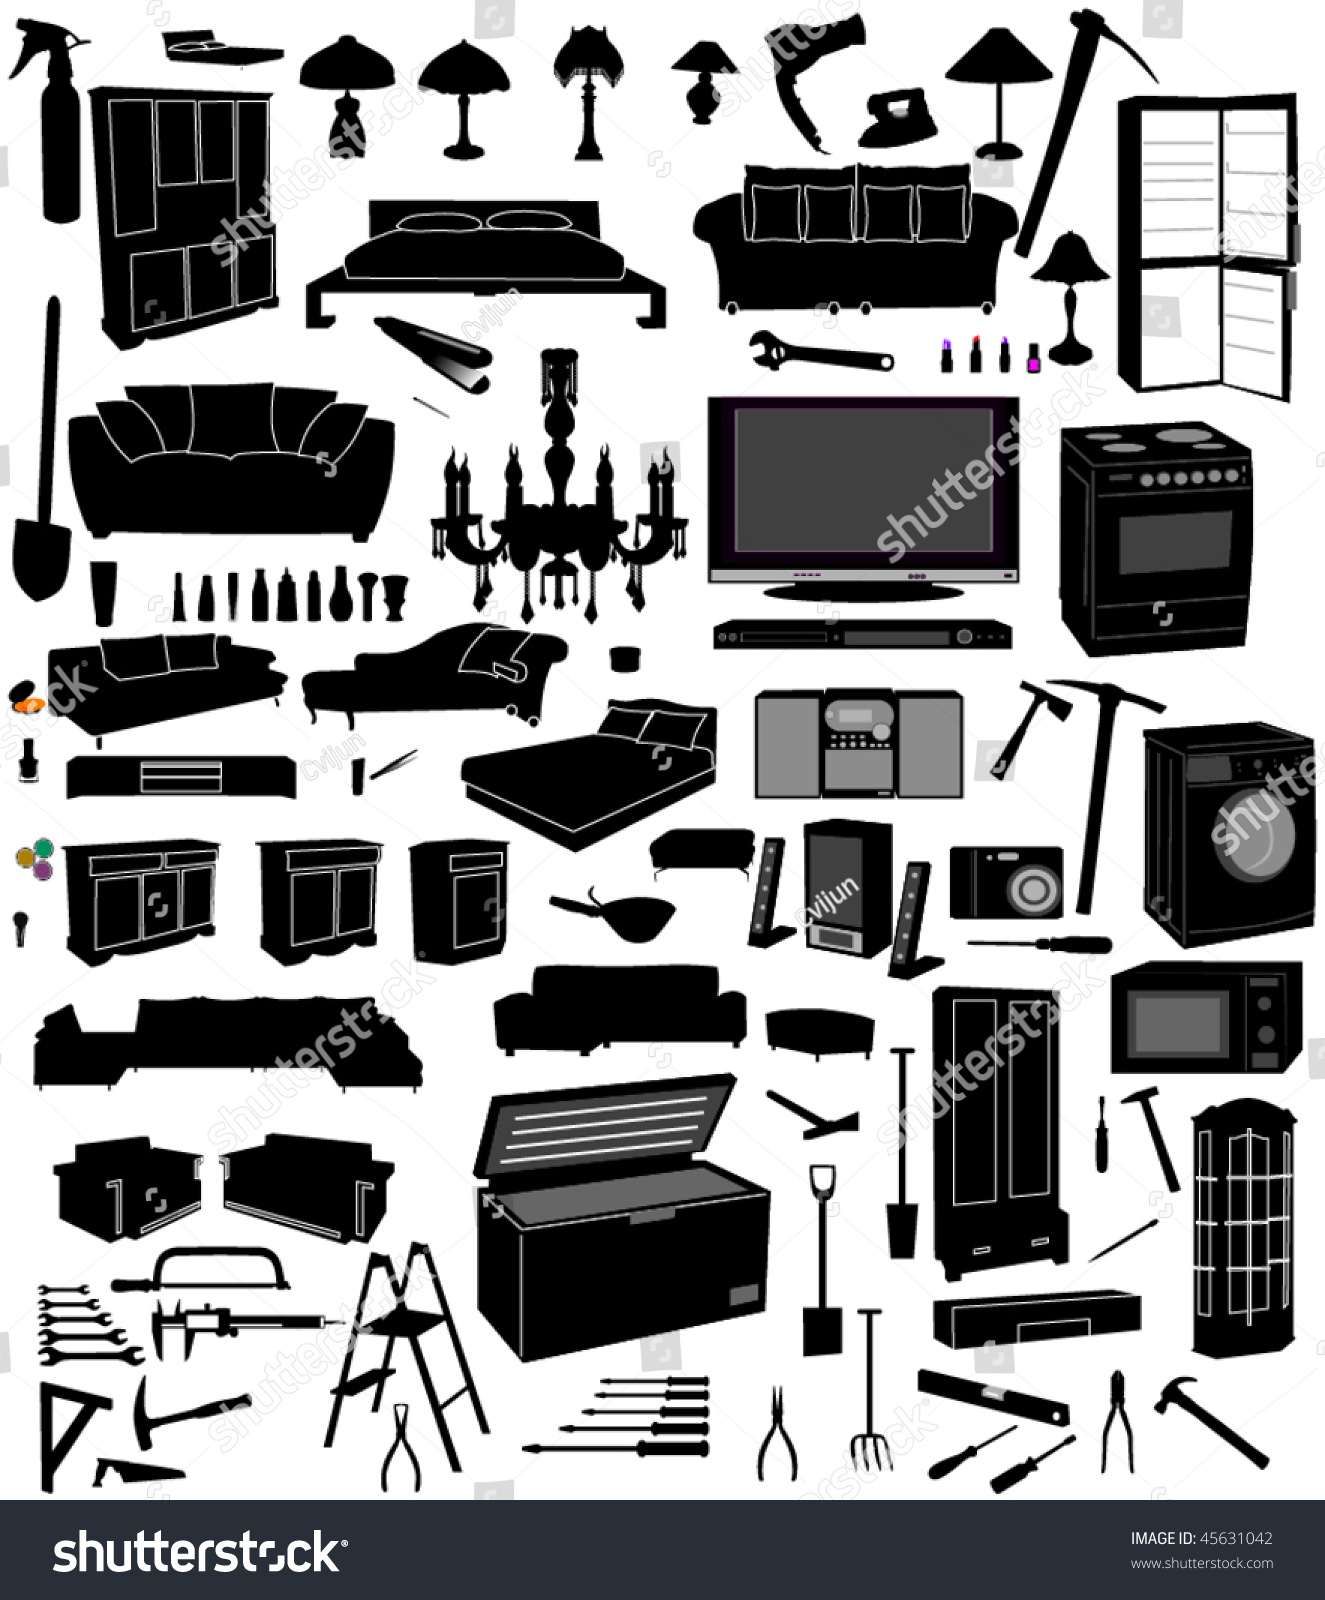 Miscellaneous household furnituretoolsmakeup stock vector 45631042 shutterstock - Household tools ...